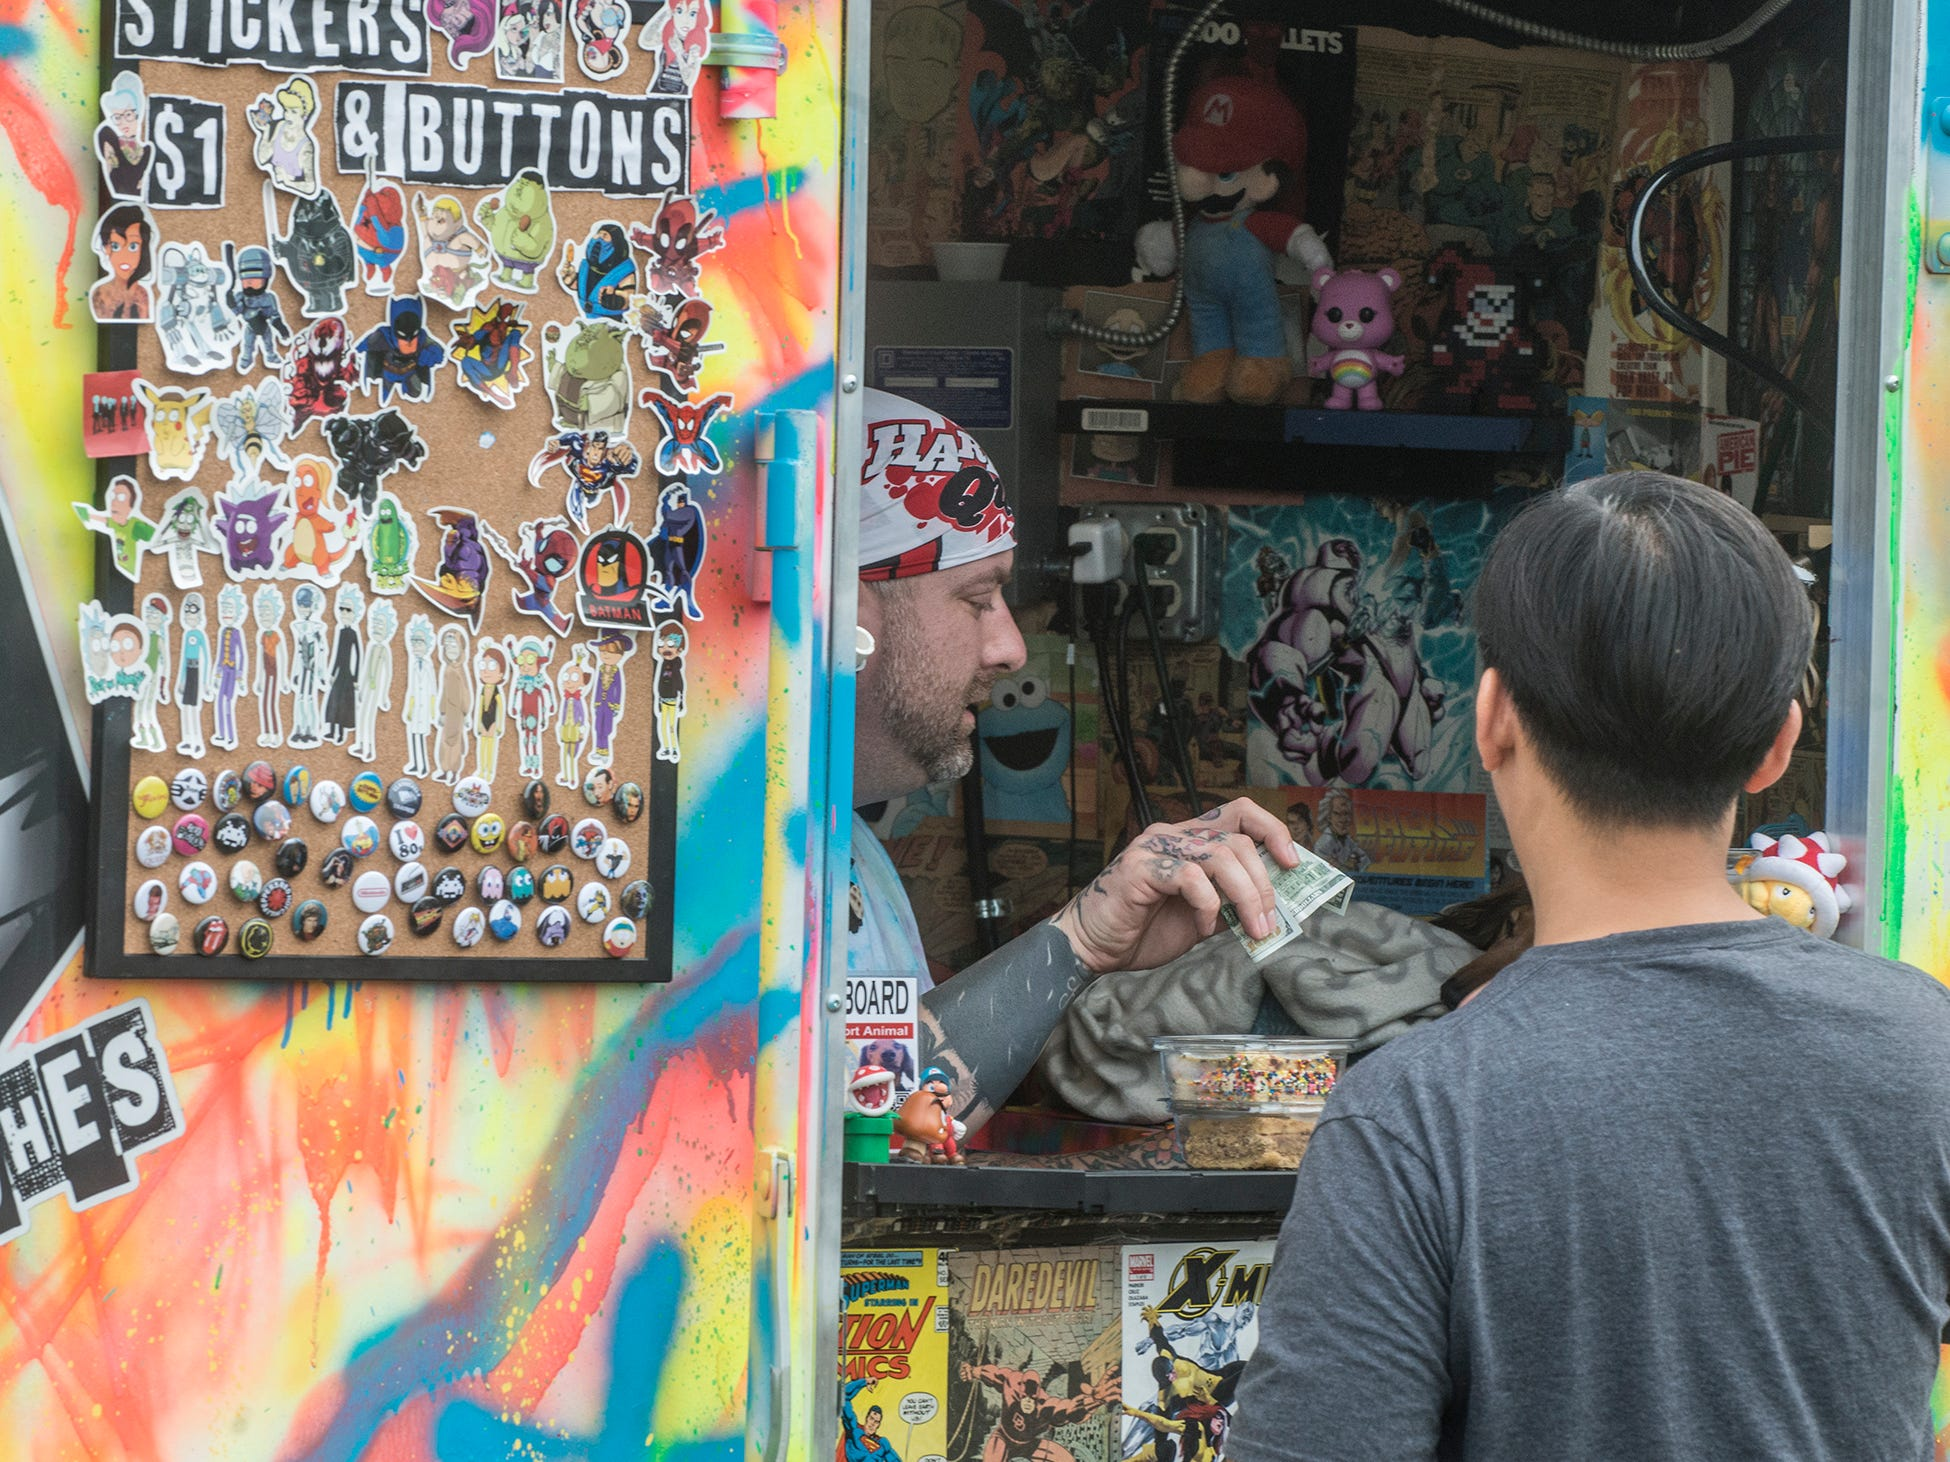 Underground Cookie Club: Food Truck Mash-Up returned to Riverwalk Stadium on Saturday, Oct. 20, 2018, bringing a variety of food trucks, music and games for guests to enjoy.